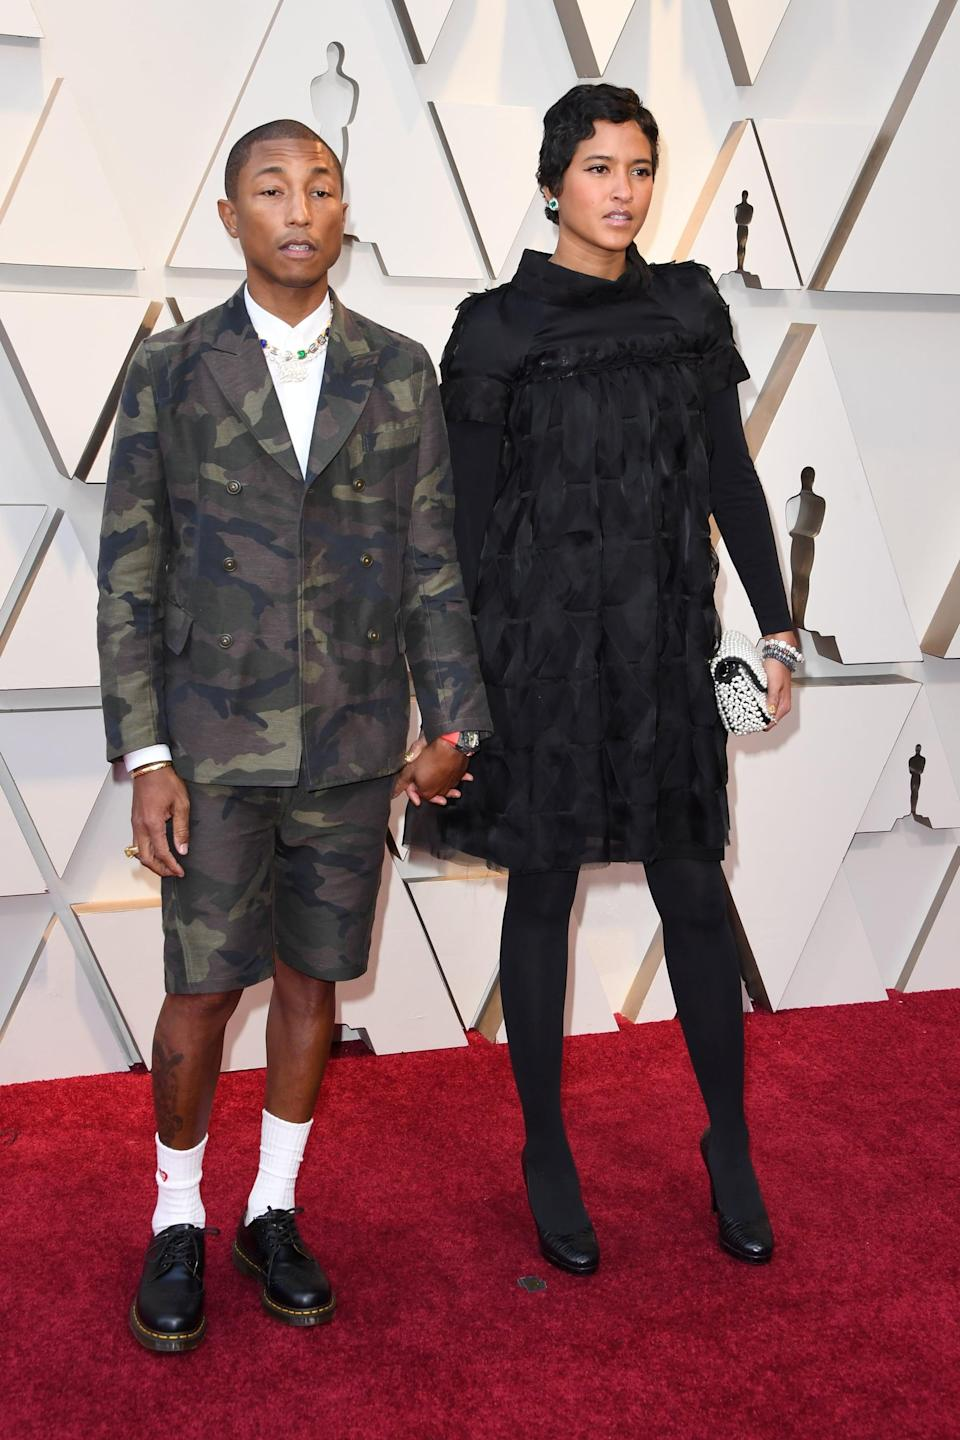 <p>Pharrell is wearing a camo shorts suit, and Helen is wearing a black dress and tights.</p>